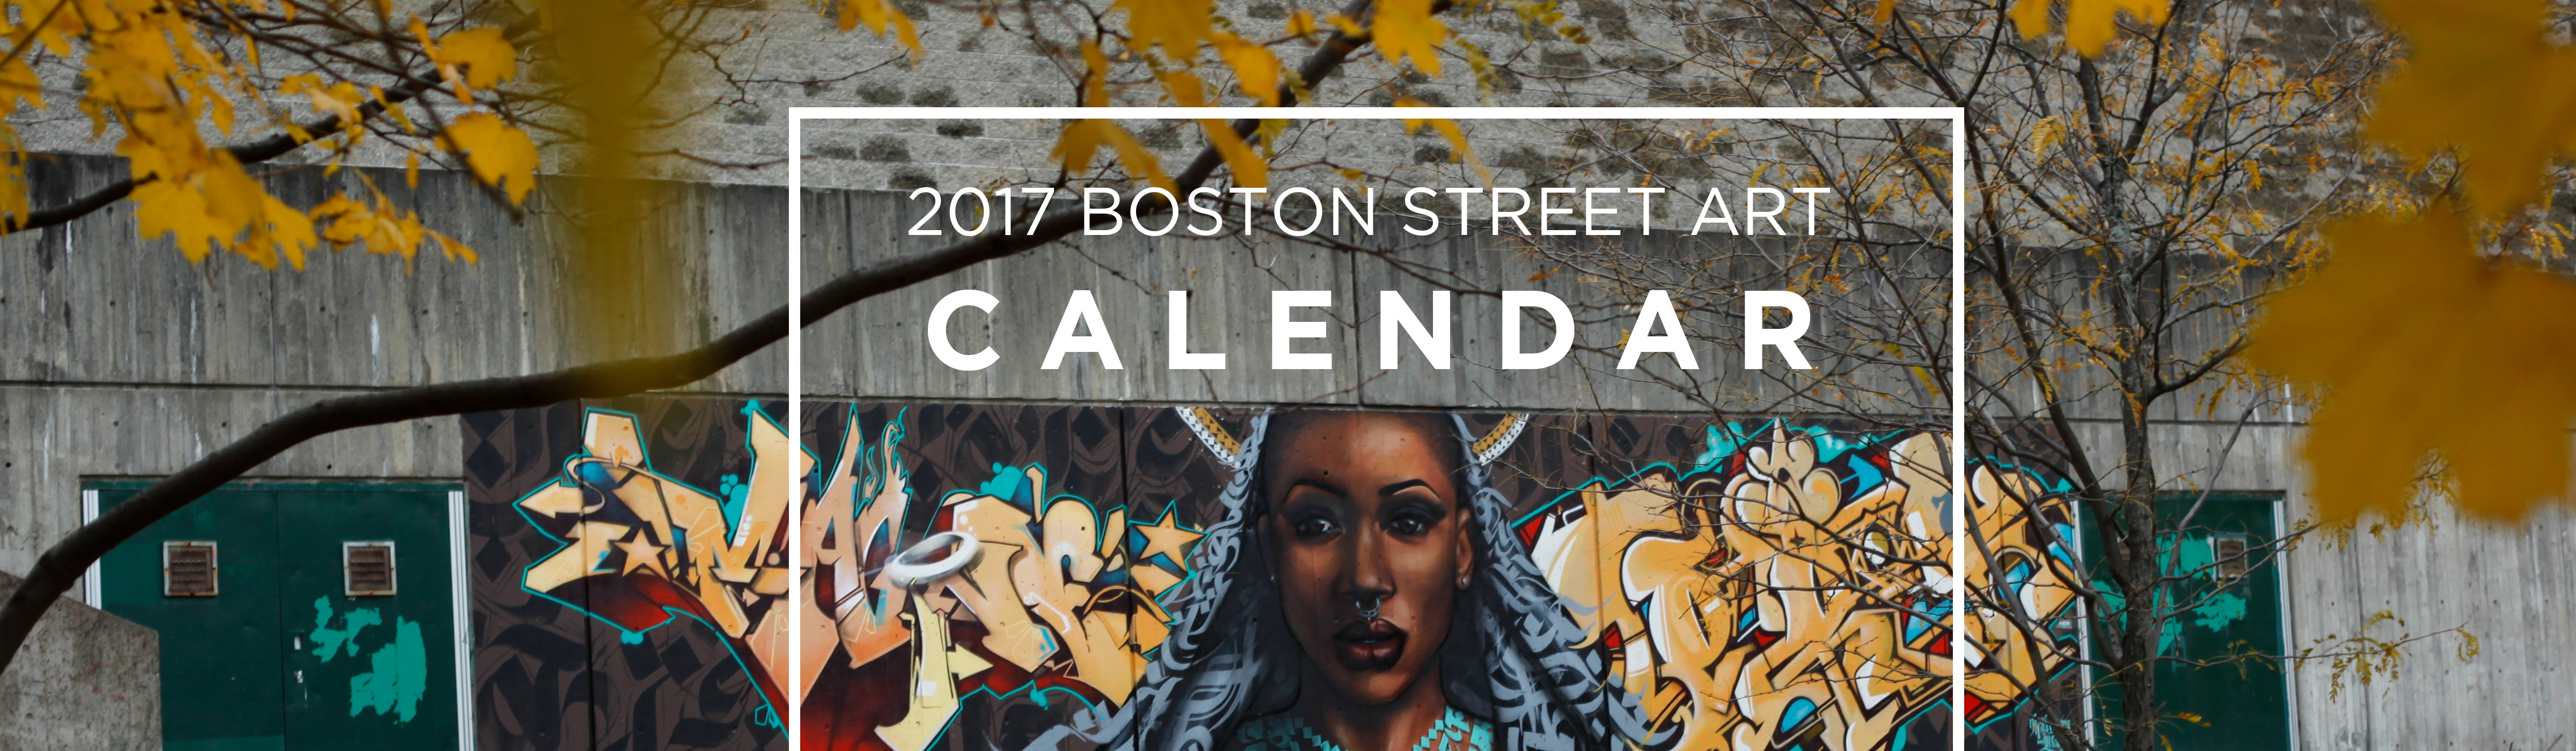 Art Calendar Boston : Behind the scenes boston street art calendar tpi